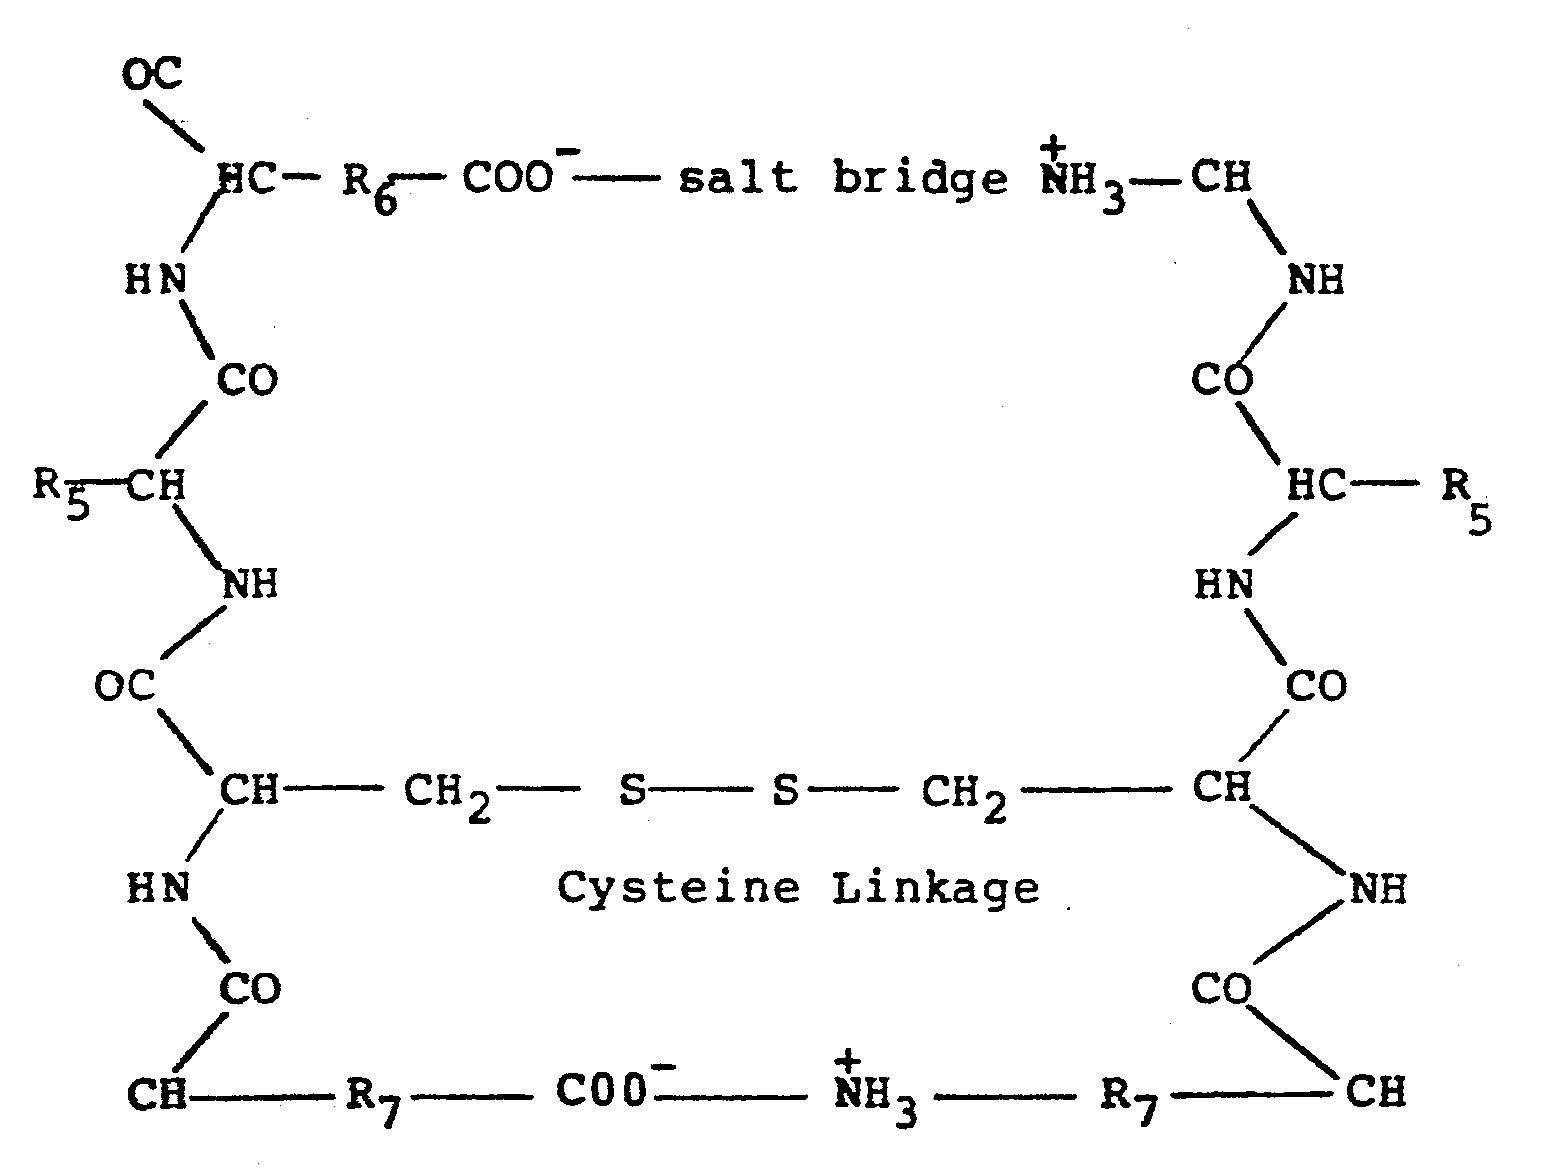 how to read chemical structures